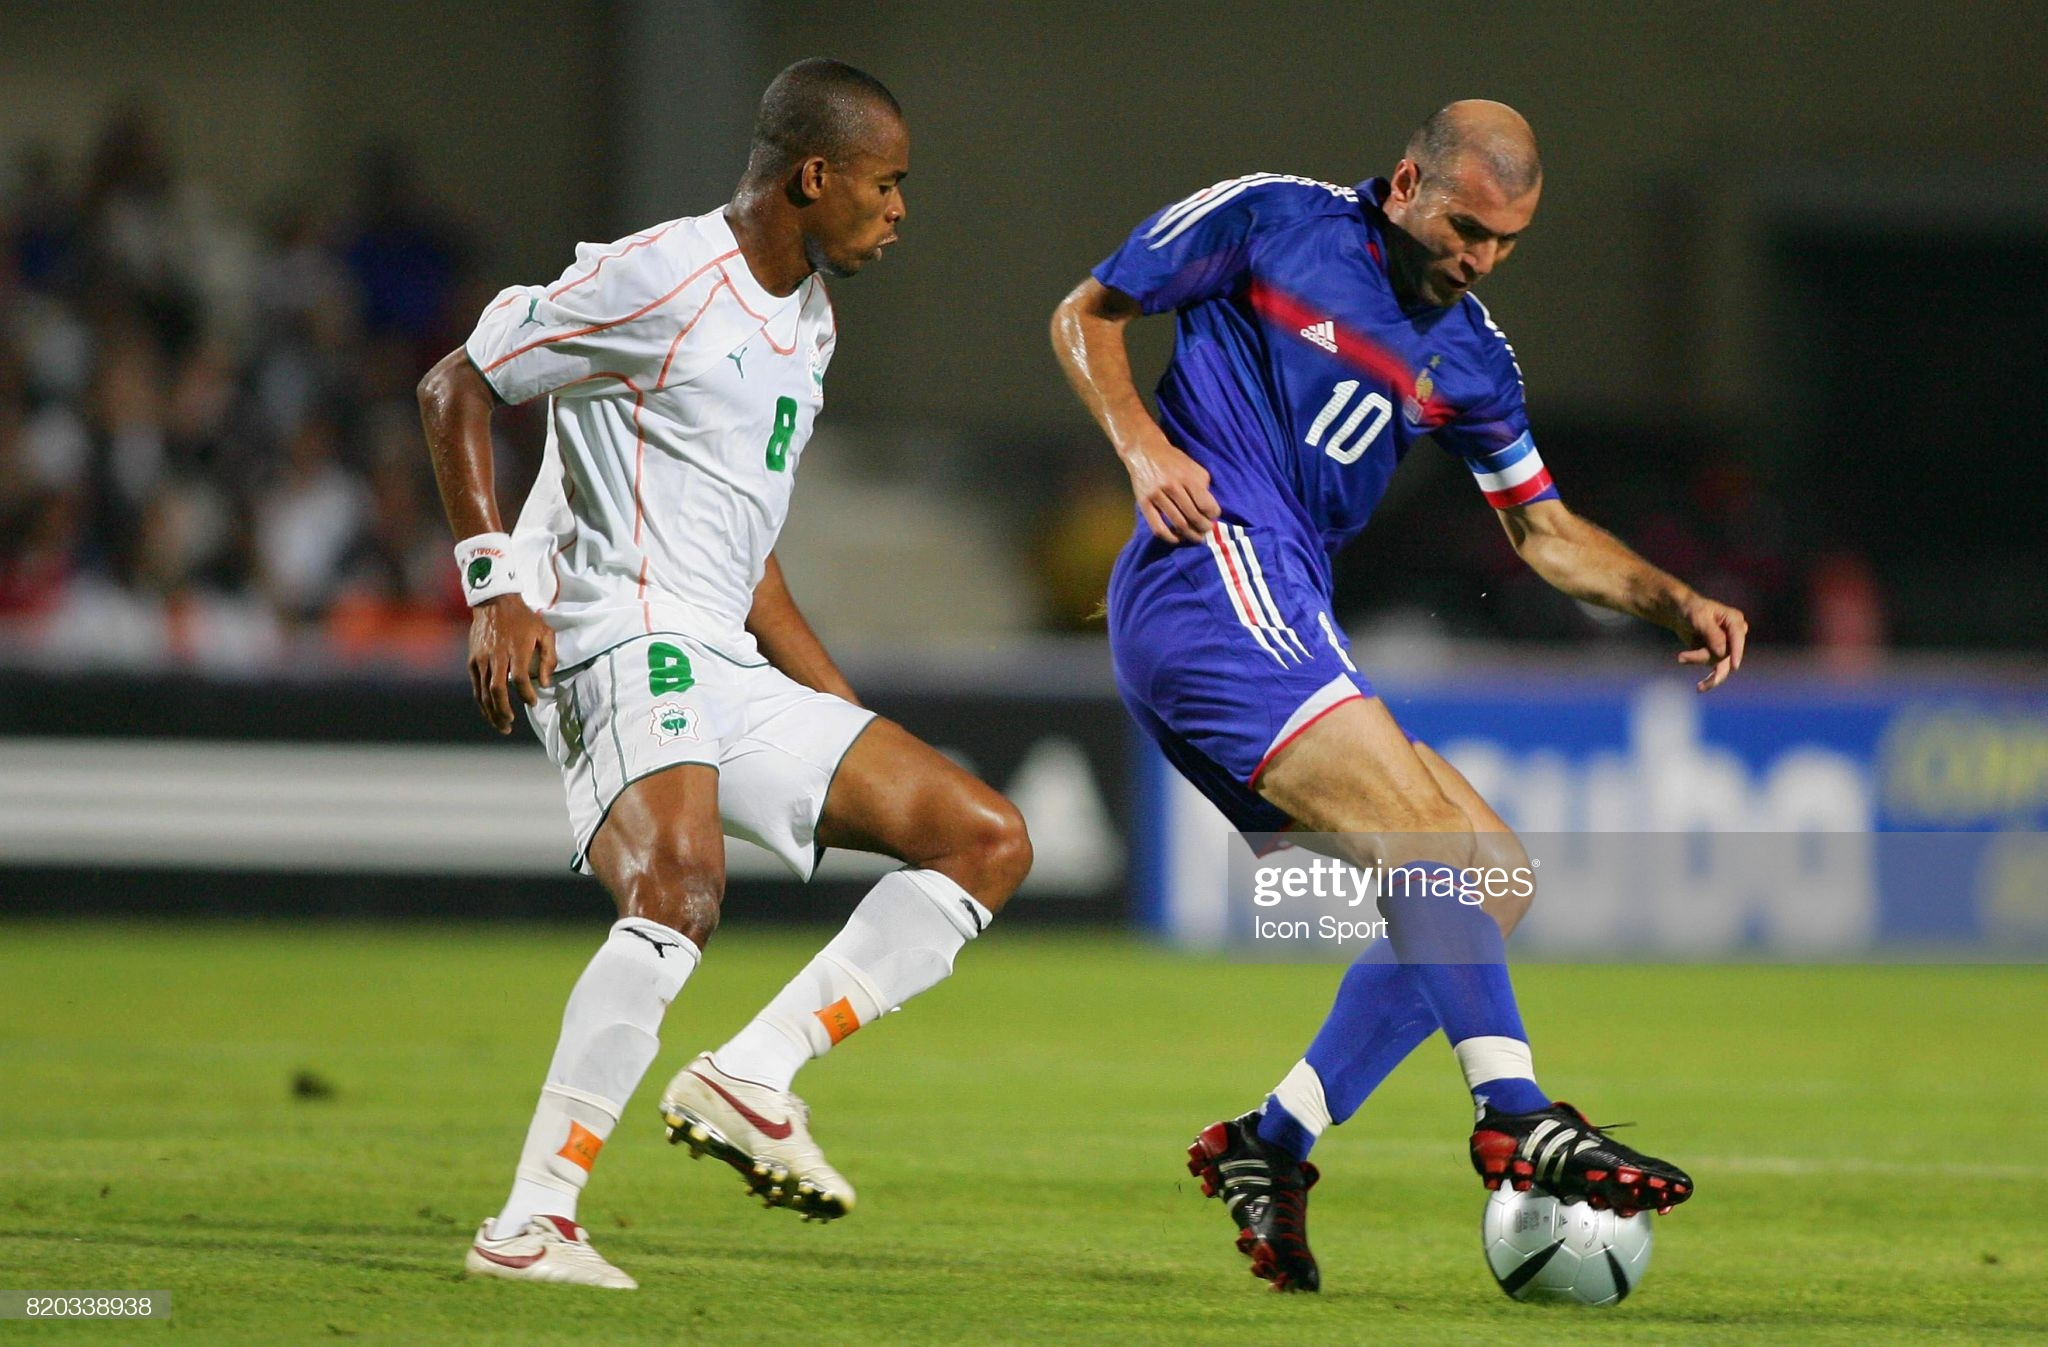 Zinedine ZIDANE / Bonaventure KALOU - France / Cote D'Ivoire - 17.08.2005 - Match amical a Montpellier   (Photo by Neal Marchand / Icon Sport via Getty Images)